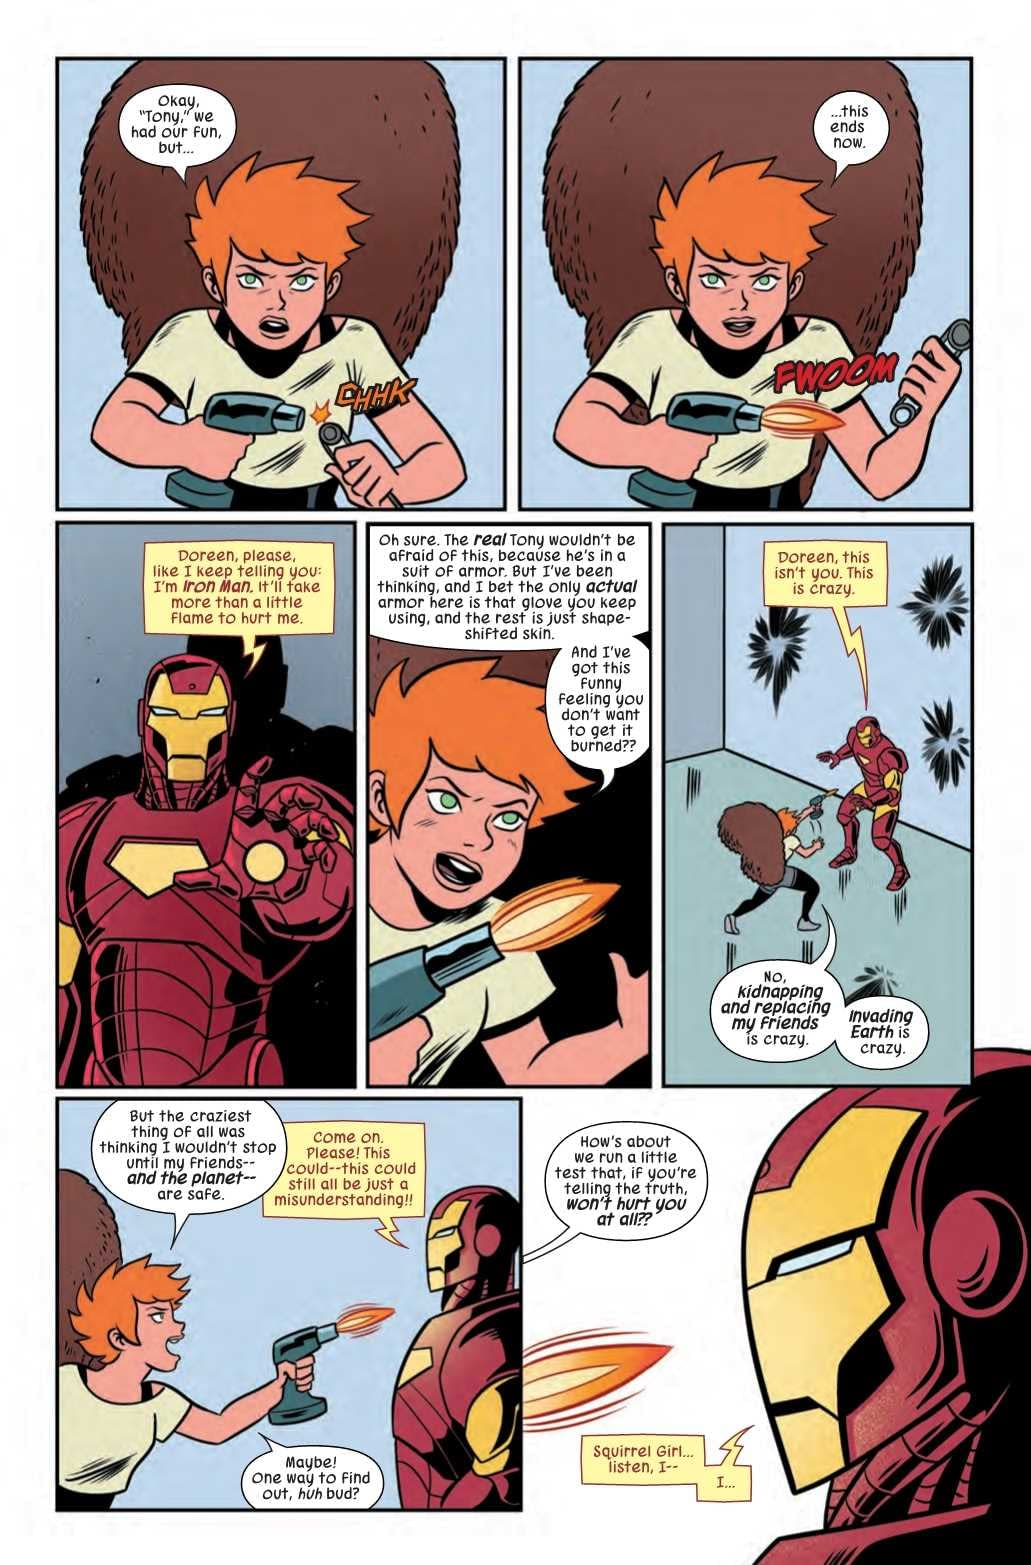 Startling Facts About Fish Pee Revealed in Next Week's Unbeatable Squirrel Girl #39